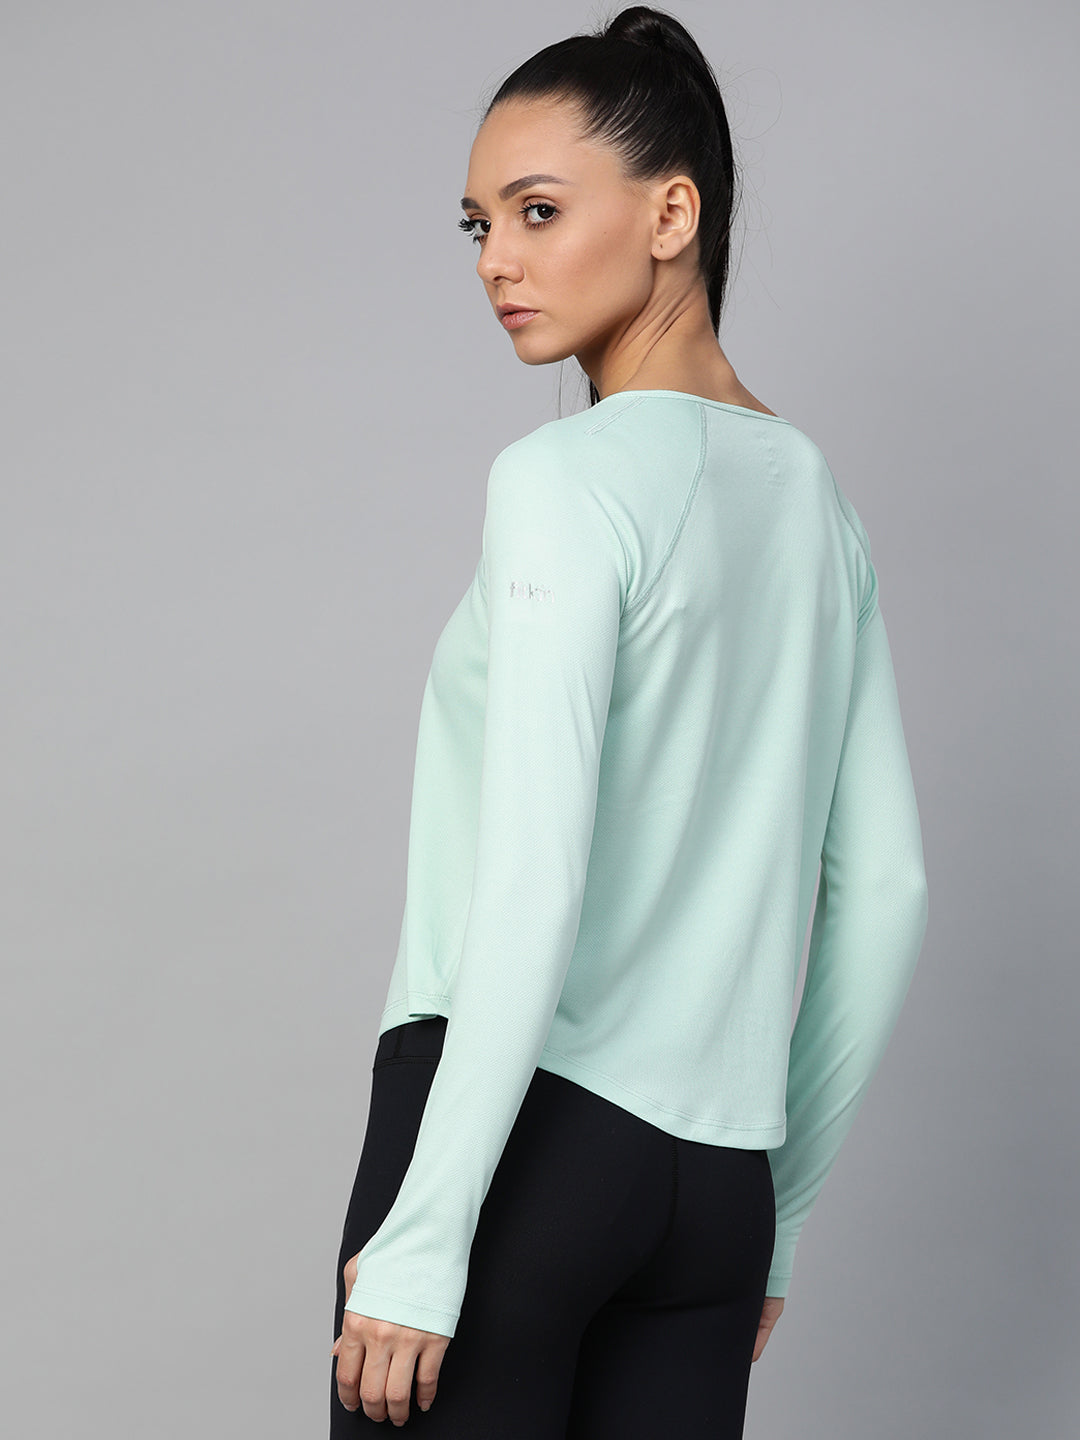 Fitkin Women Sea Green Solid Round Neck T-shirt